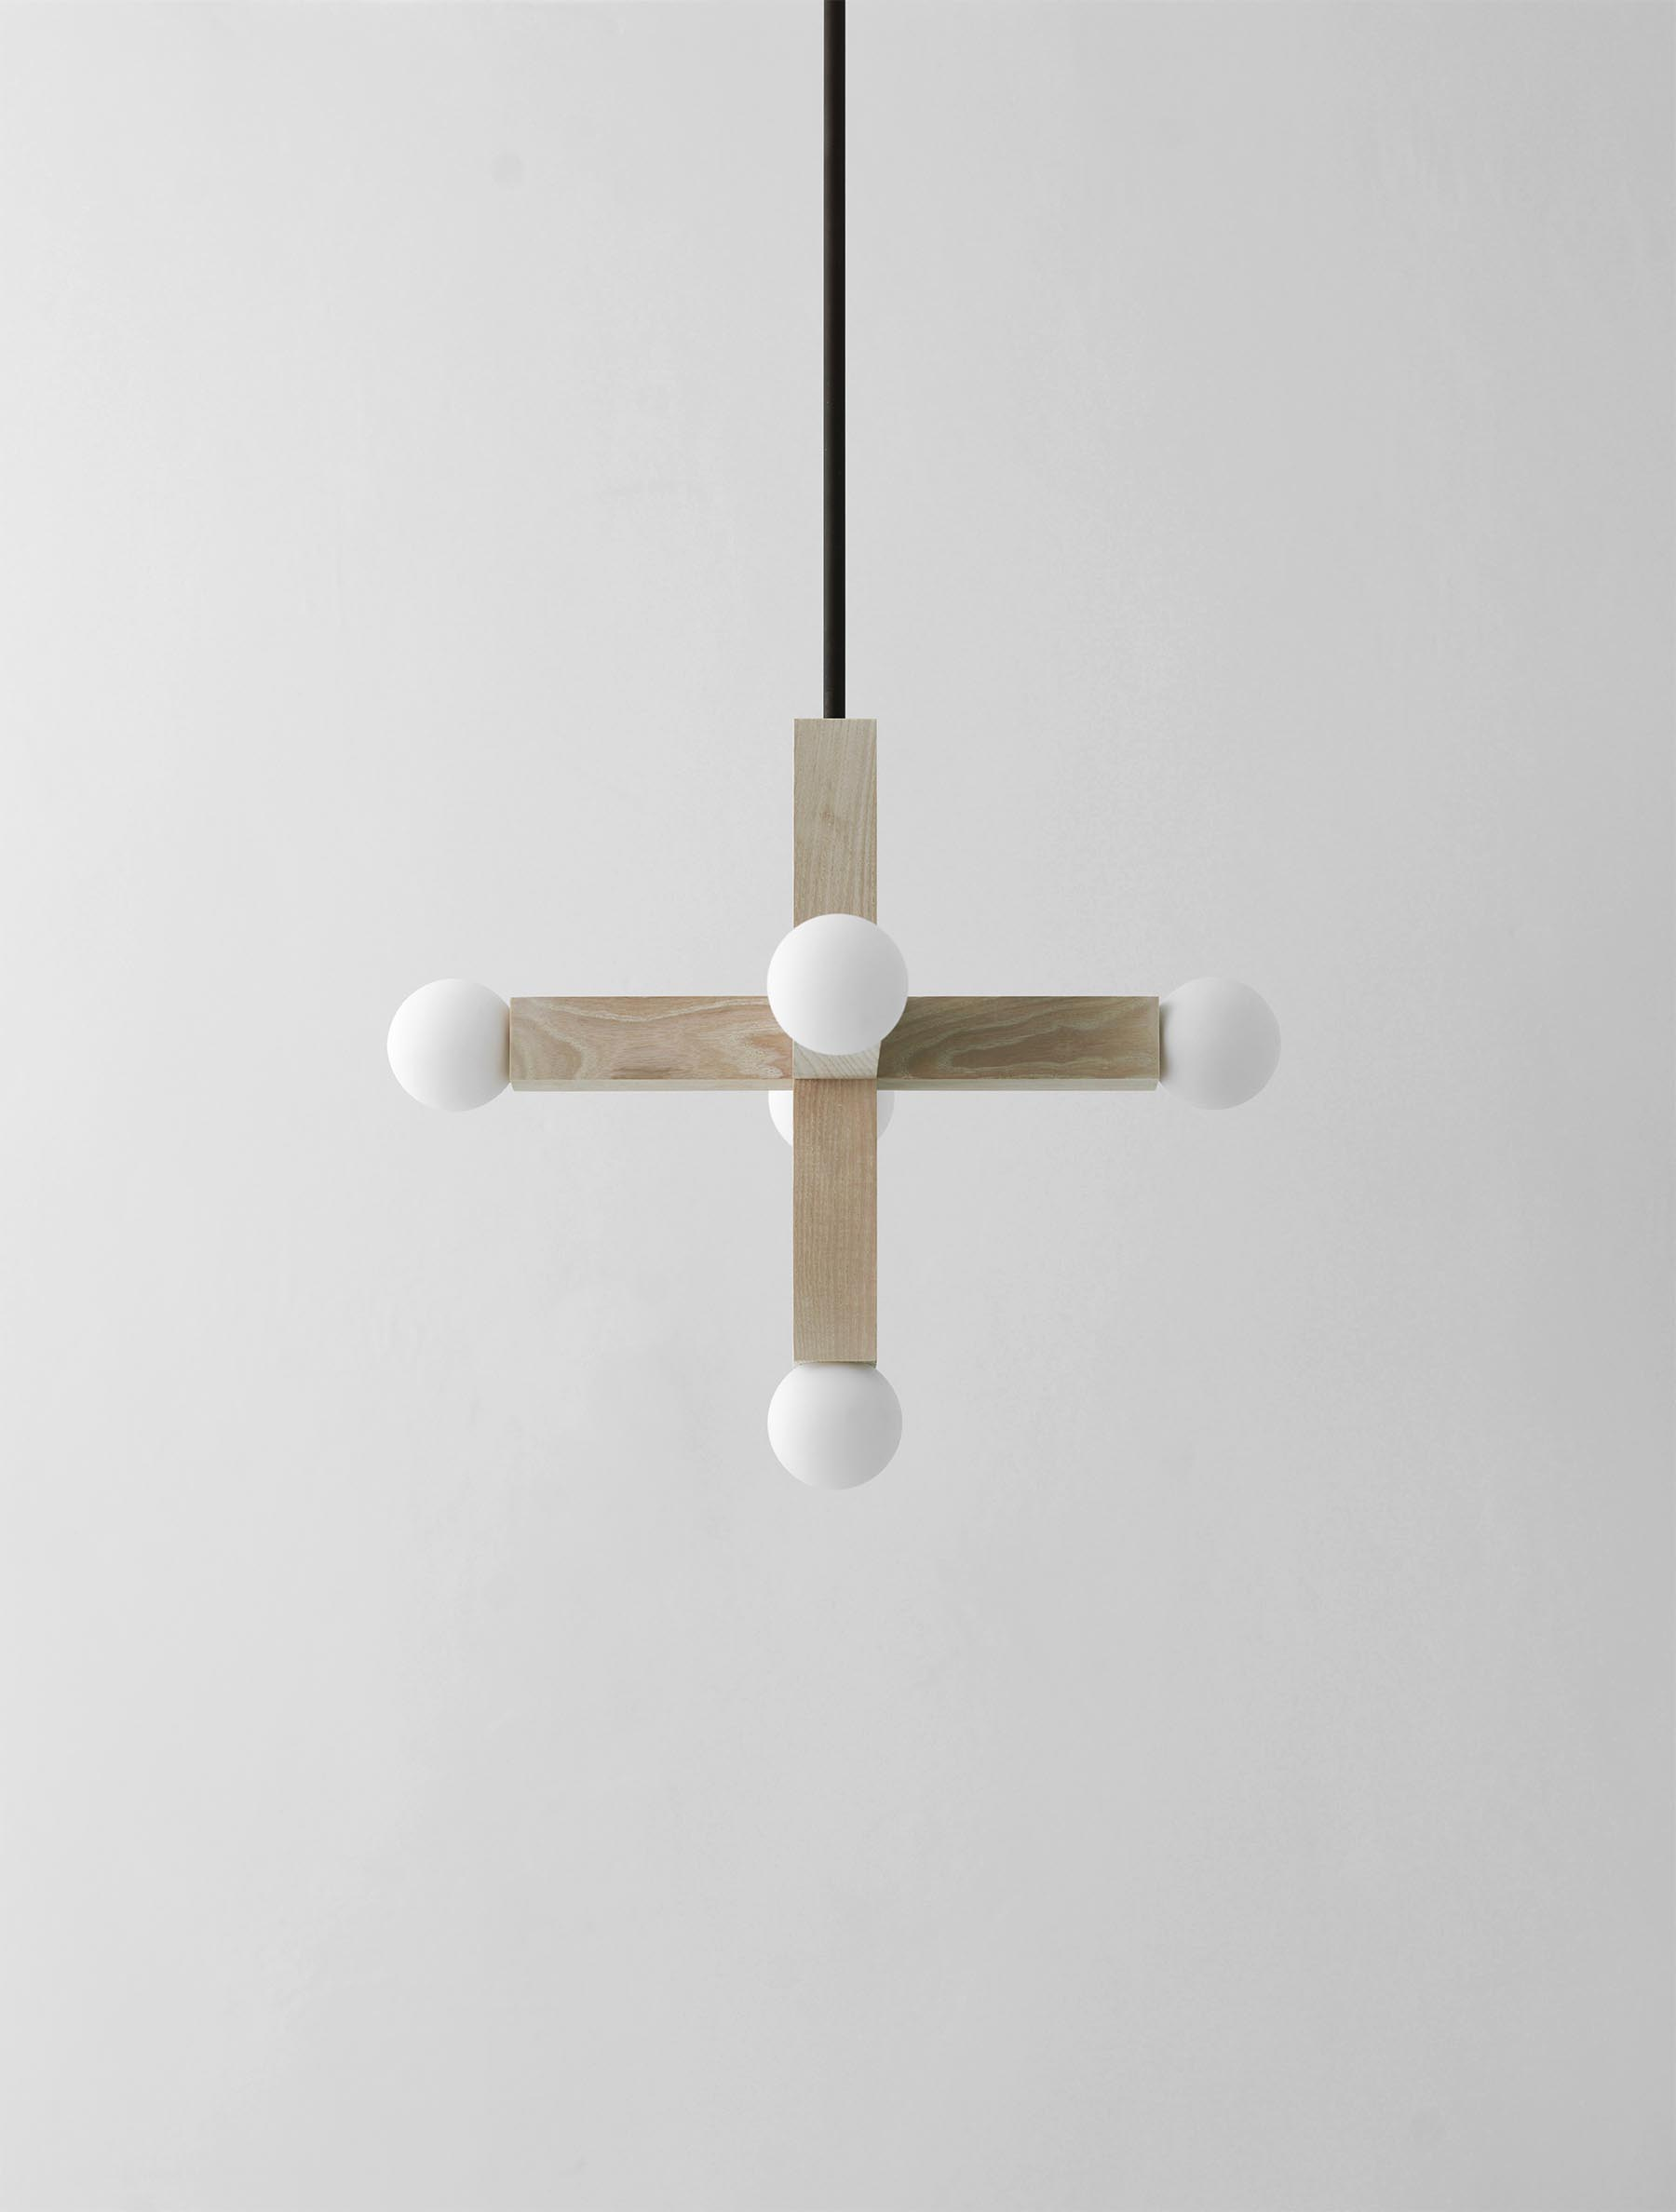 Union Pendant shown in Maker Black, Bleached Ash, Matte White Globes